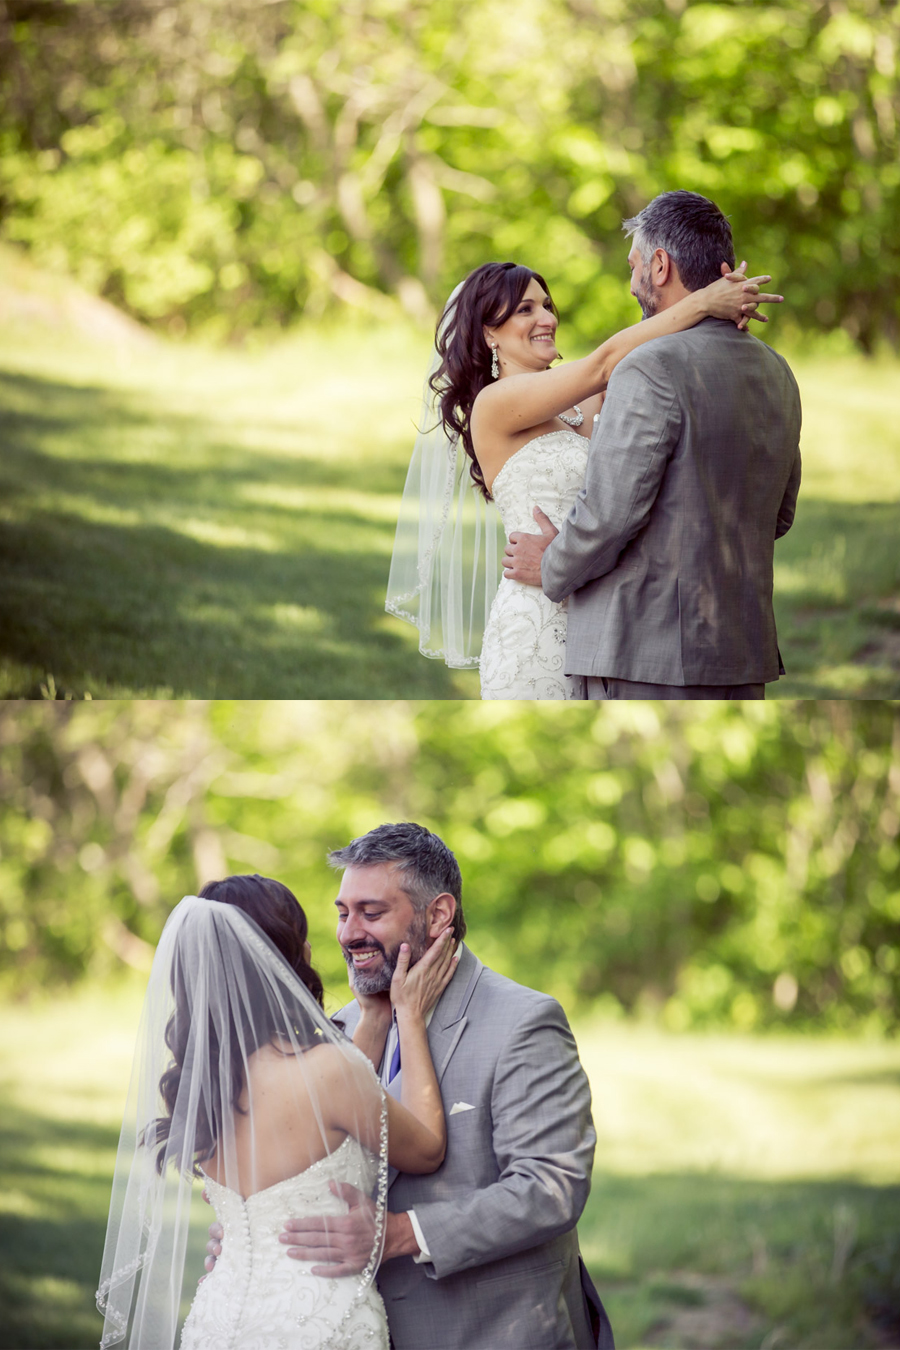 NEPA_Pocono_Weddings_Rob_Lettieri_Photography_05.jpg